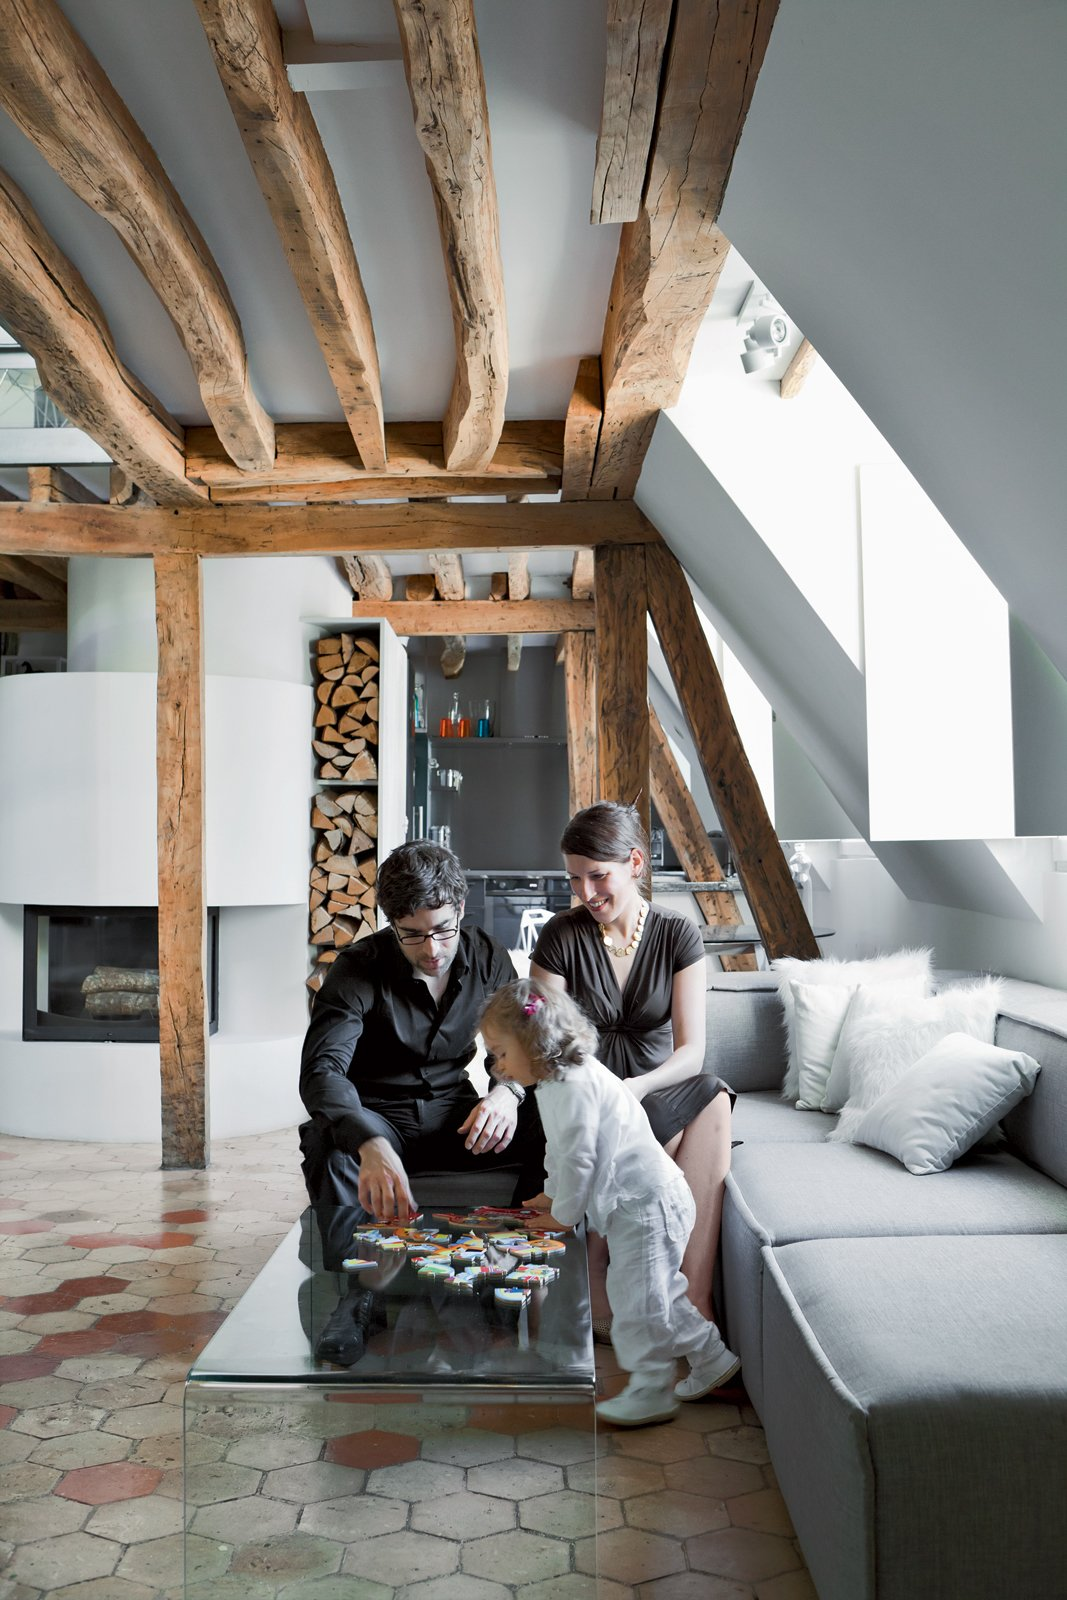 Living Room, Ceramic Tile Floor, Wood Burning Fireplace, and Sofa Herrman, his wife, Cécile, and their young daughter, Rose, play on the Pont table by Ligne Roset . The Carmo sofa is by Anders Nørgaard for BoConcept.  Photo 5 of 10 in 10 Modern Renovations to Unique Homes in France from A Corbusier-Inspired Parisian Home